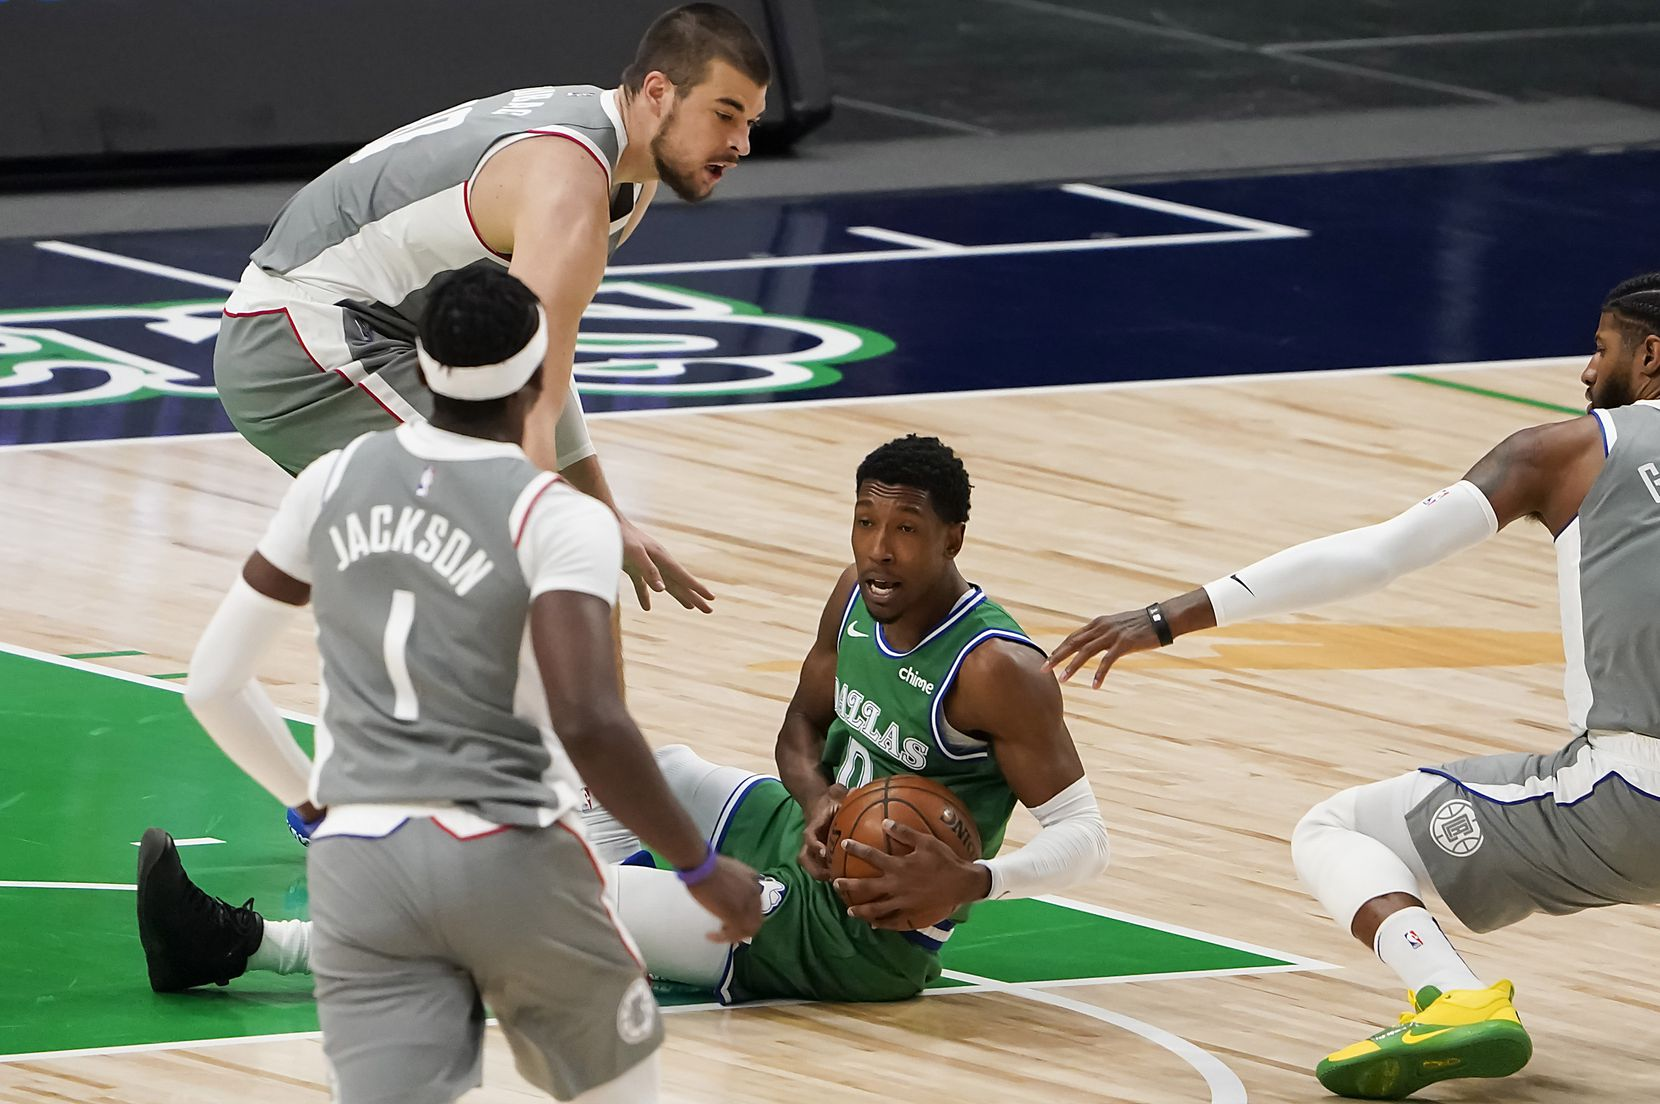 Dallas Mavericks guard Josh Richardson (0) grabs a loose ball between LA Clippers center Ivica Zubac (40), guard Paul George (13) and guard Reggie Jackson (1) during the first quarter of an NBA basketball game at American Airlines Center on Wednesday, March 17, 2021, in Dallas.